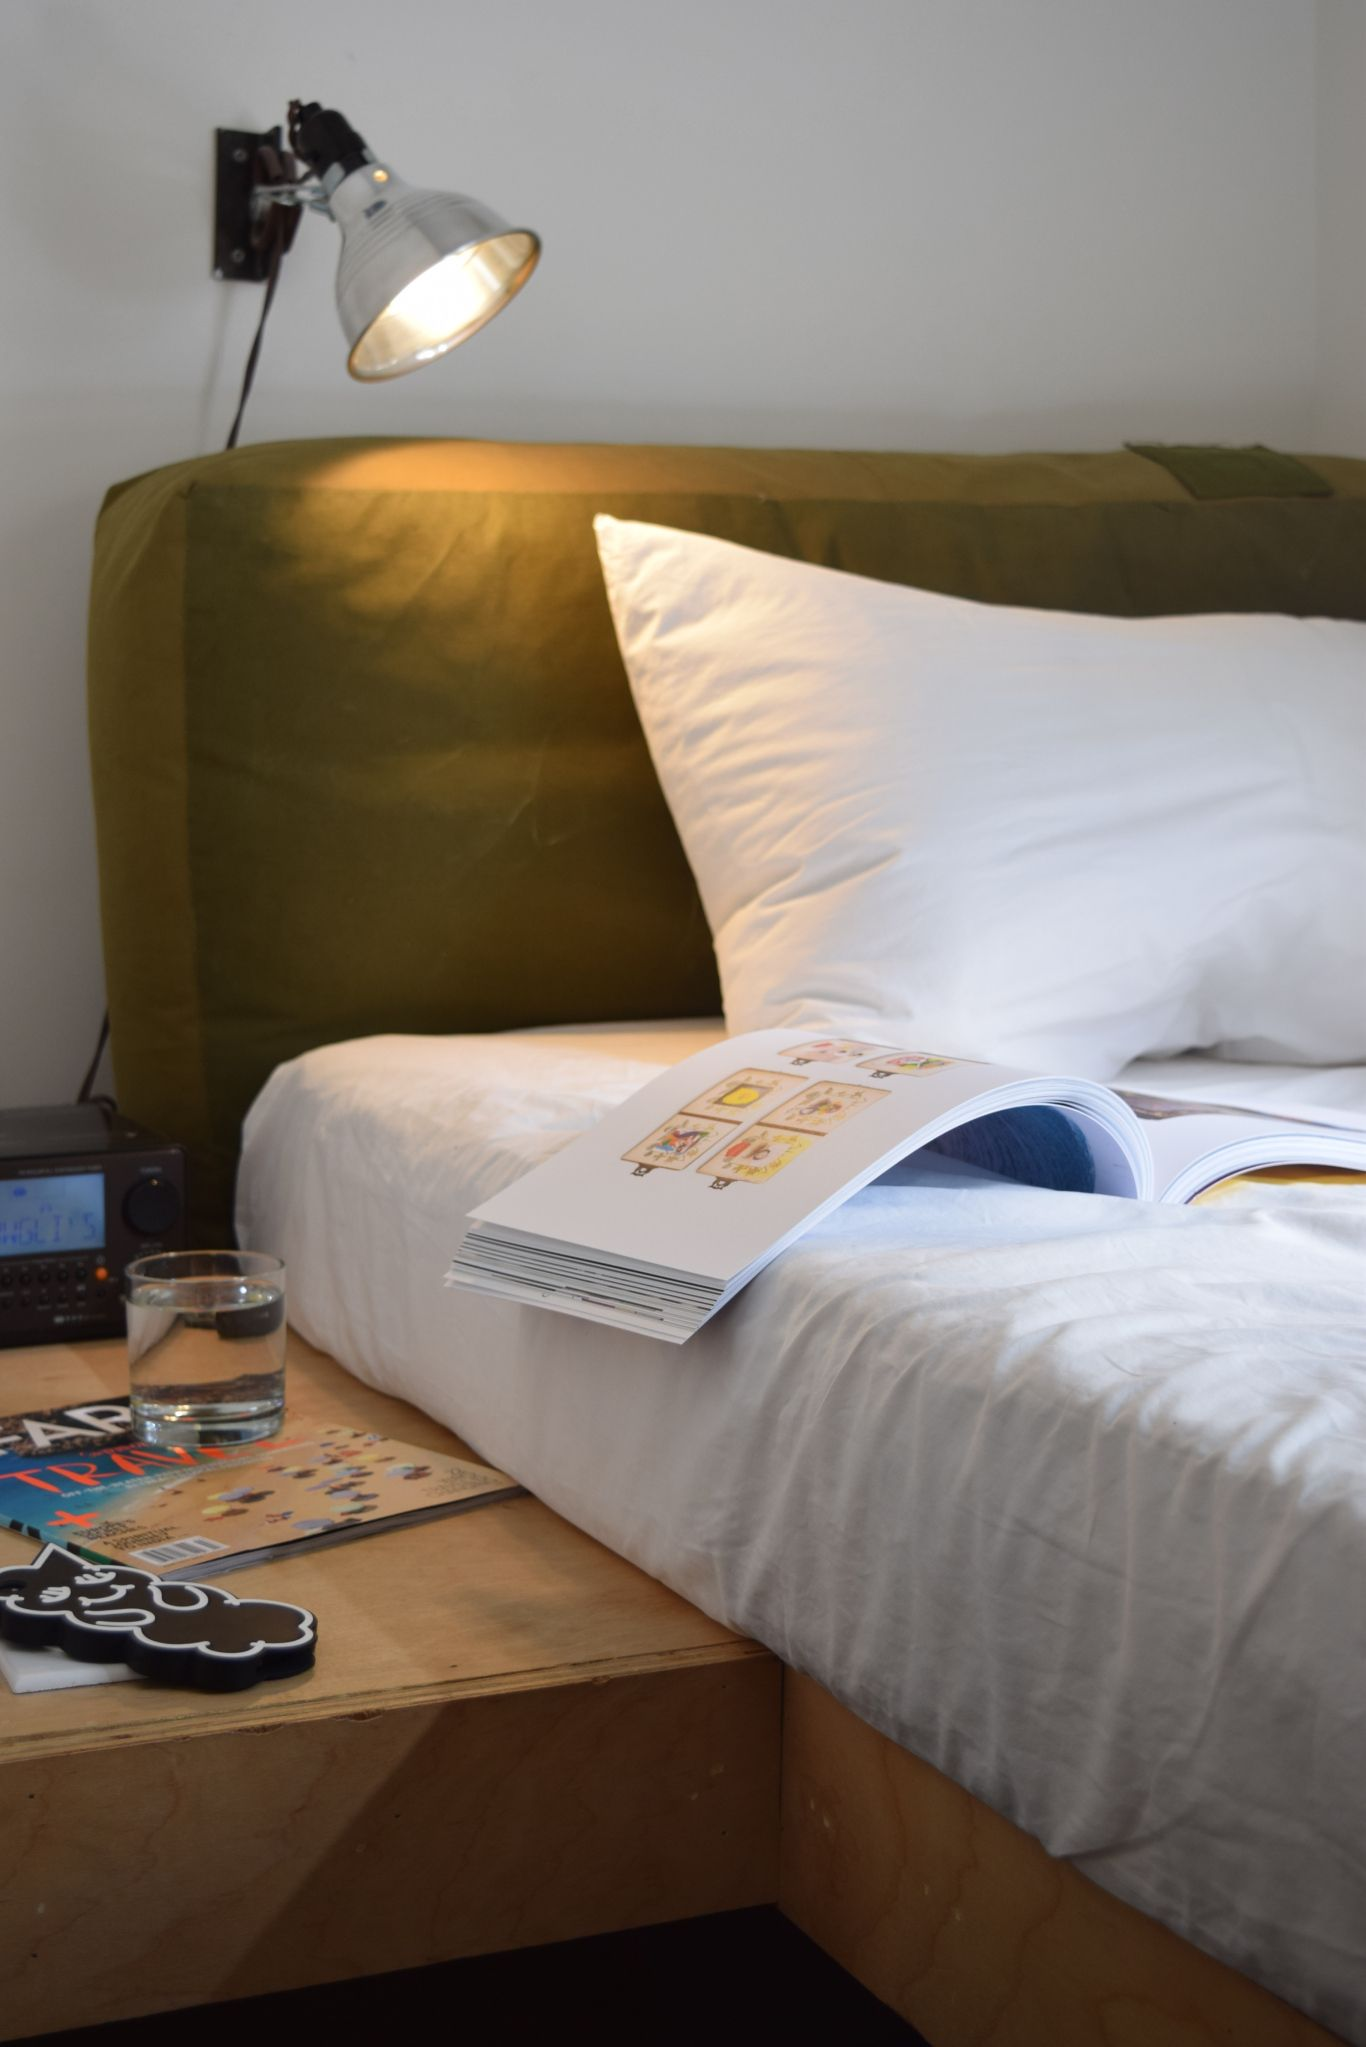 Best Beds For Reading Or Working In Cool Beds Bed Hotel